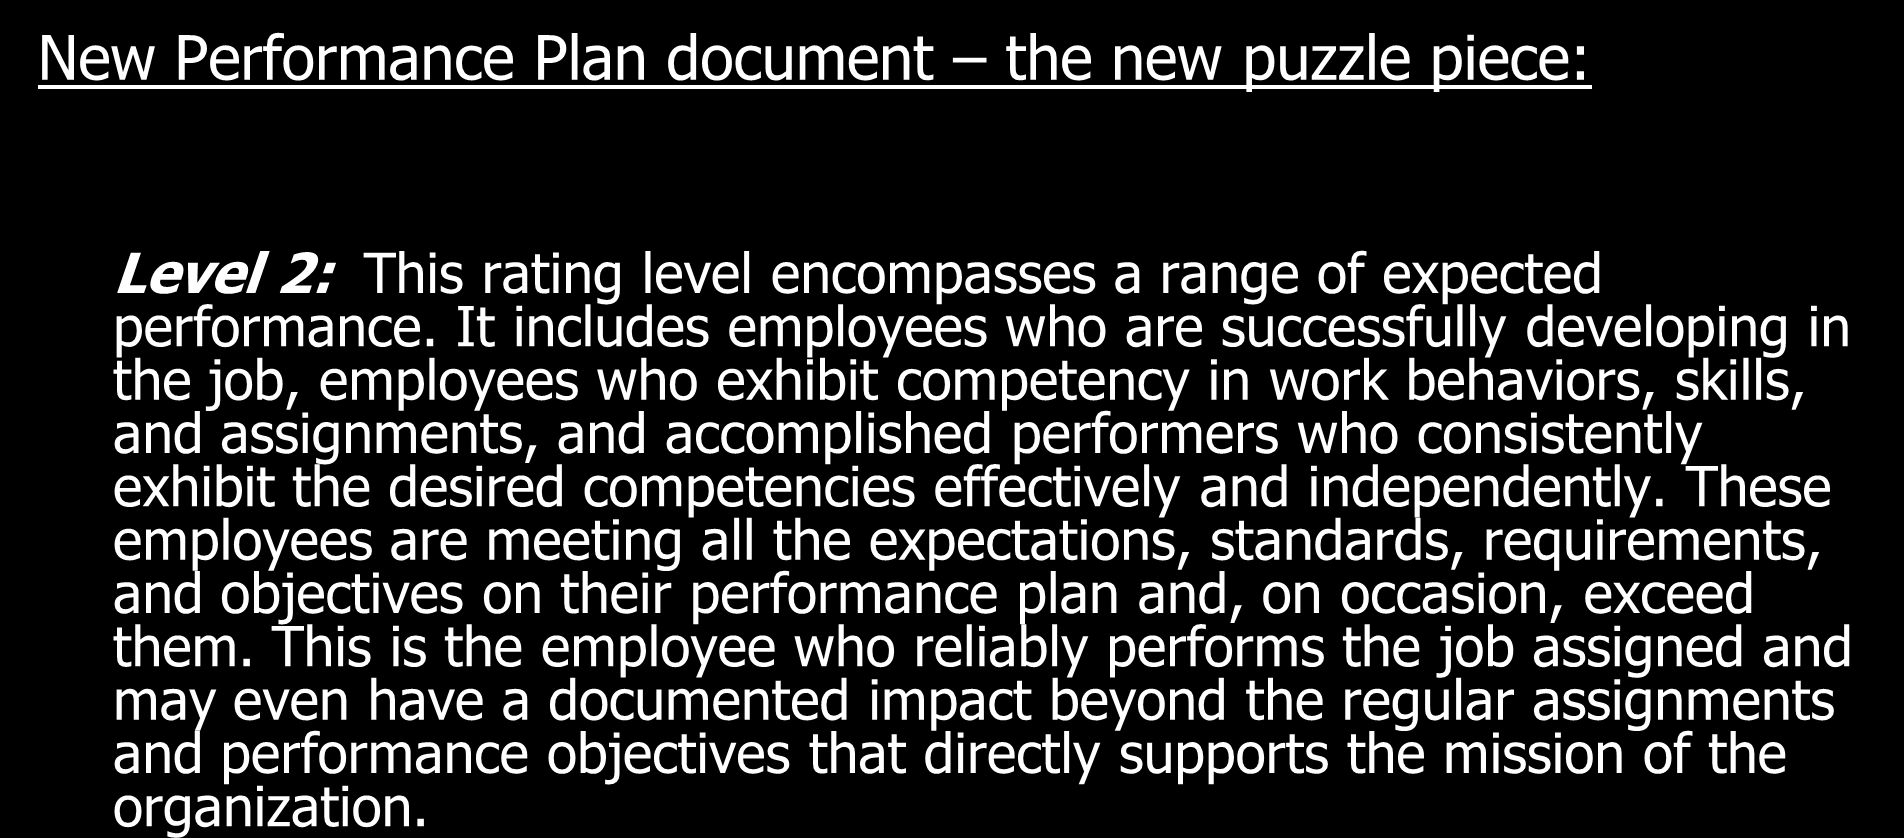 New Performance Plan document the new puzzle piece: Level 2: This rating level encompasses a range of expected performance.